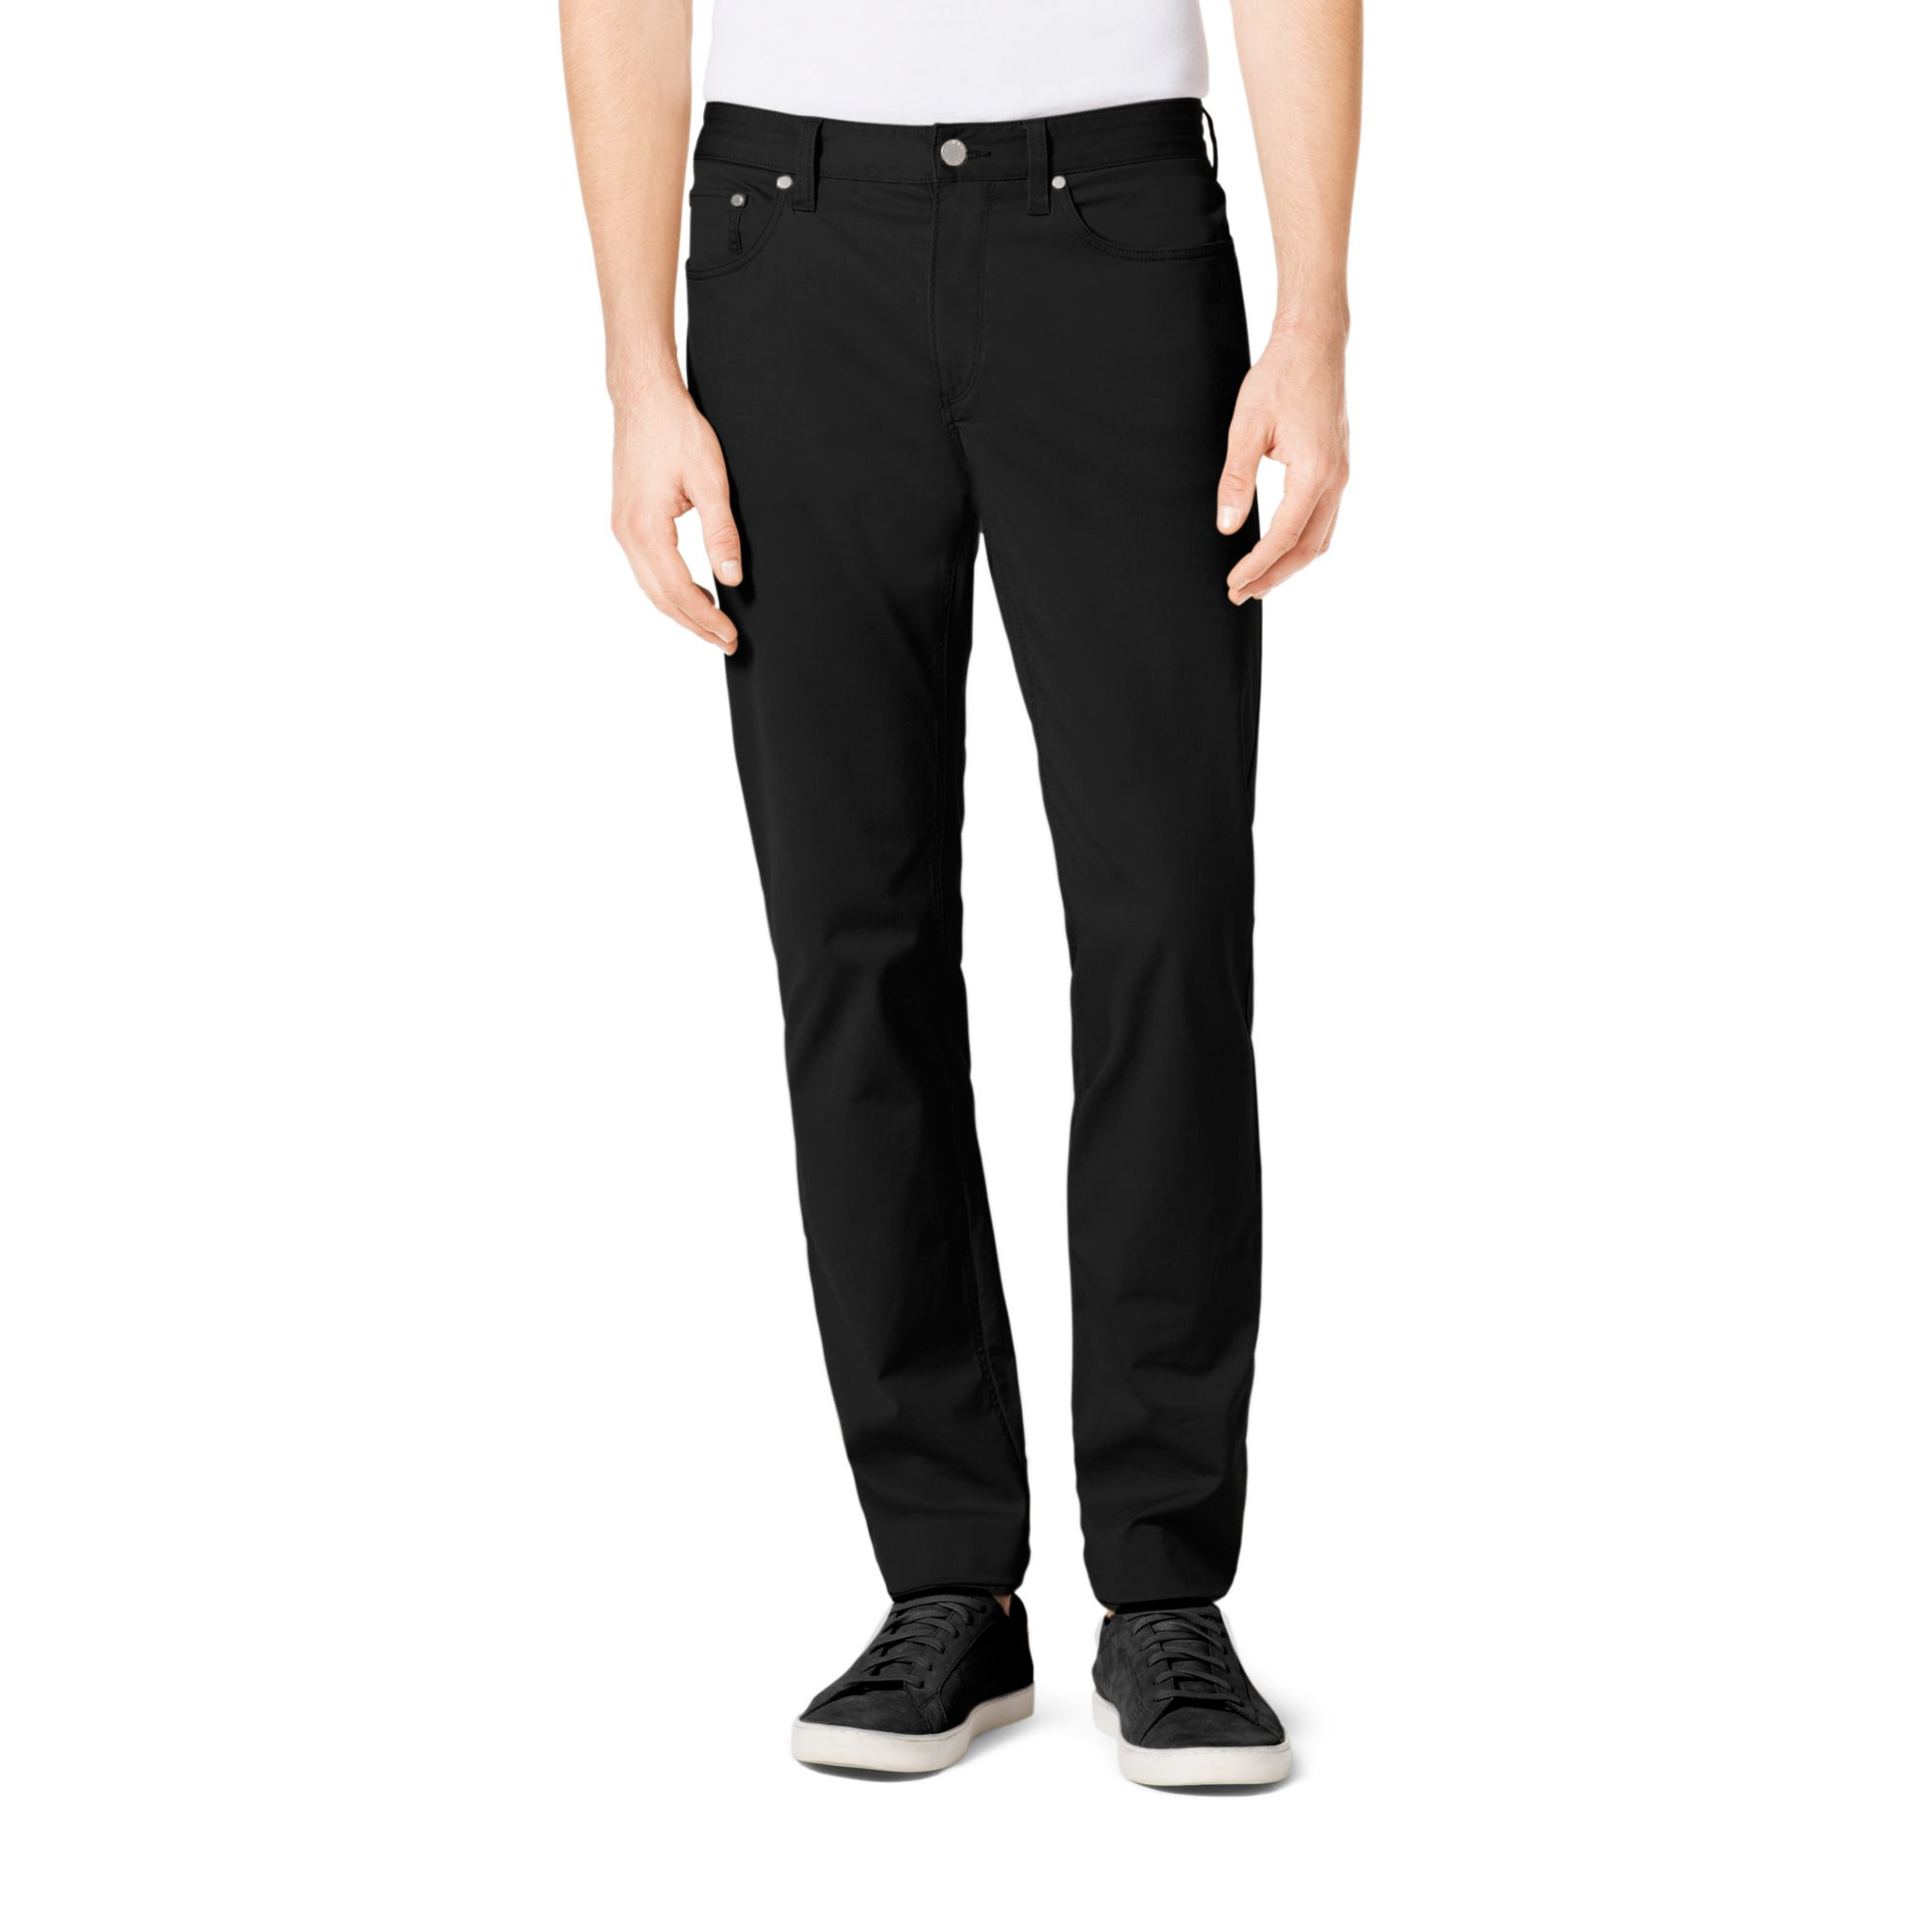 michael kors tailored fit stretch twill jeans in black for men lyst. Black Bedroom Furniture Sets. Home Design Ideas